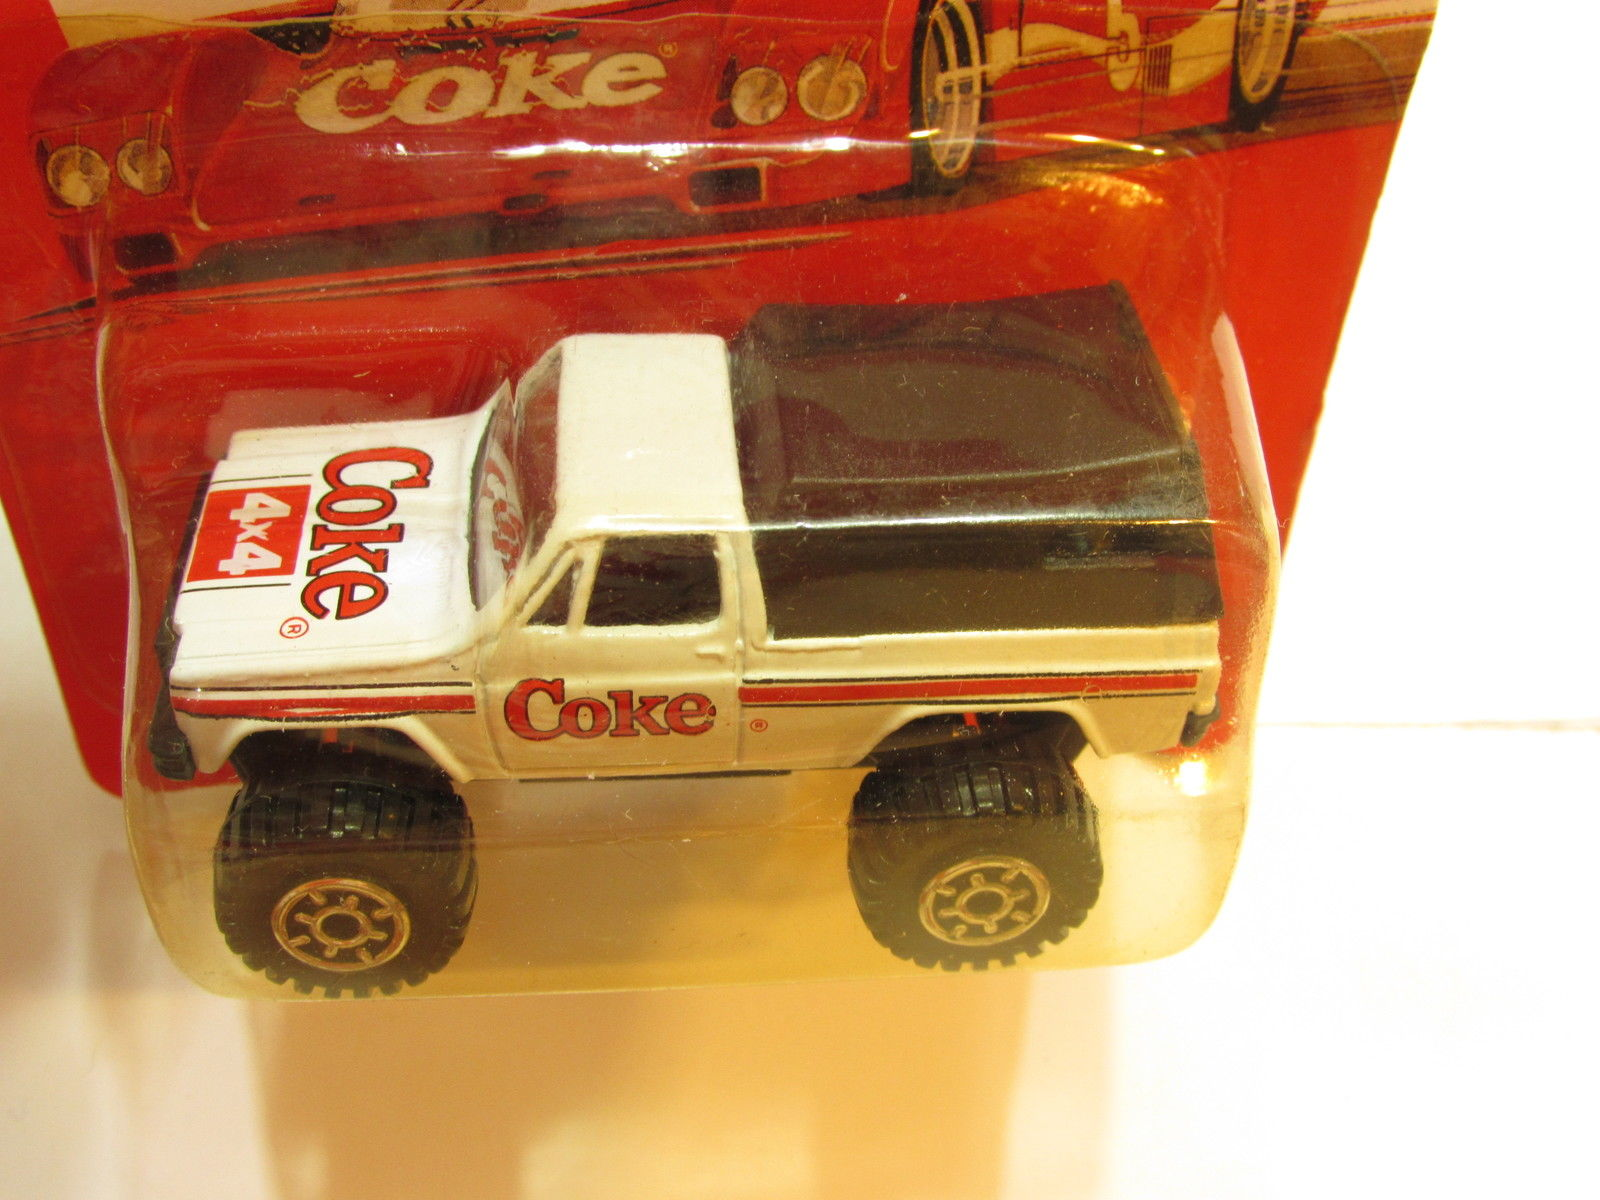 COCA COLA DIE CAST METAL TOY VEHICLES 4X4 TRUCK WHITE